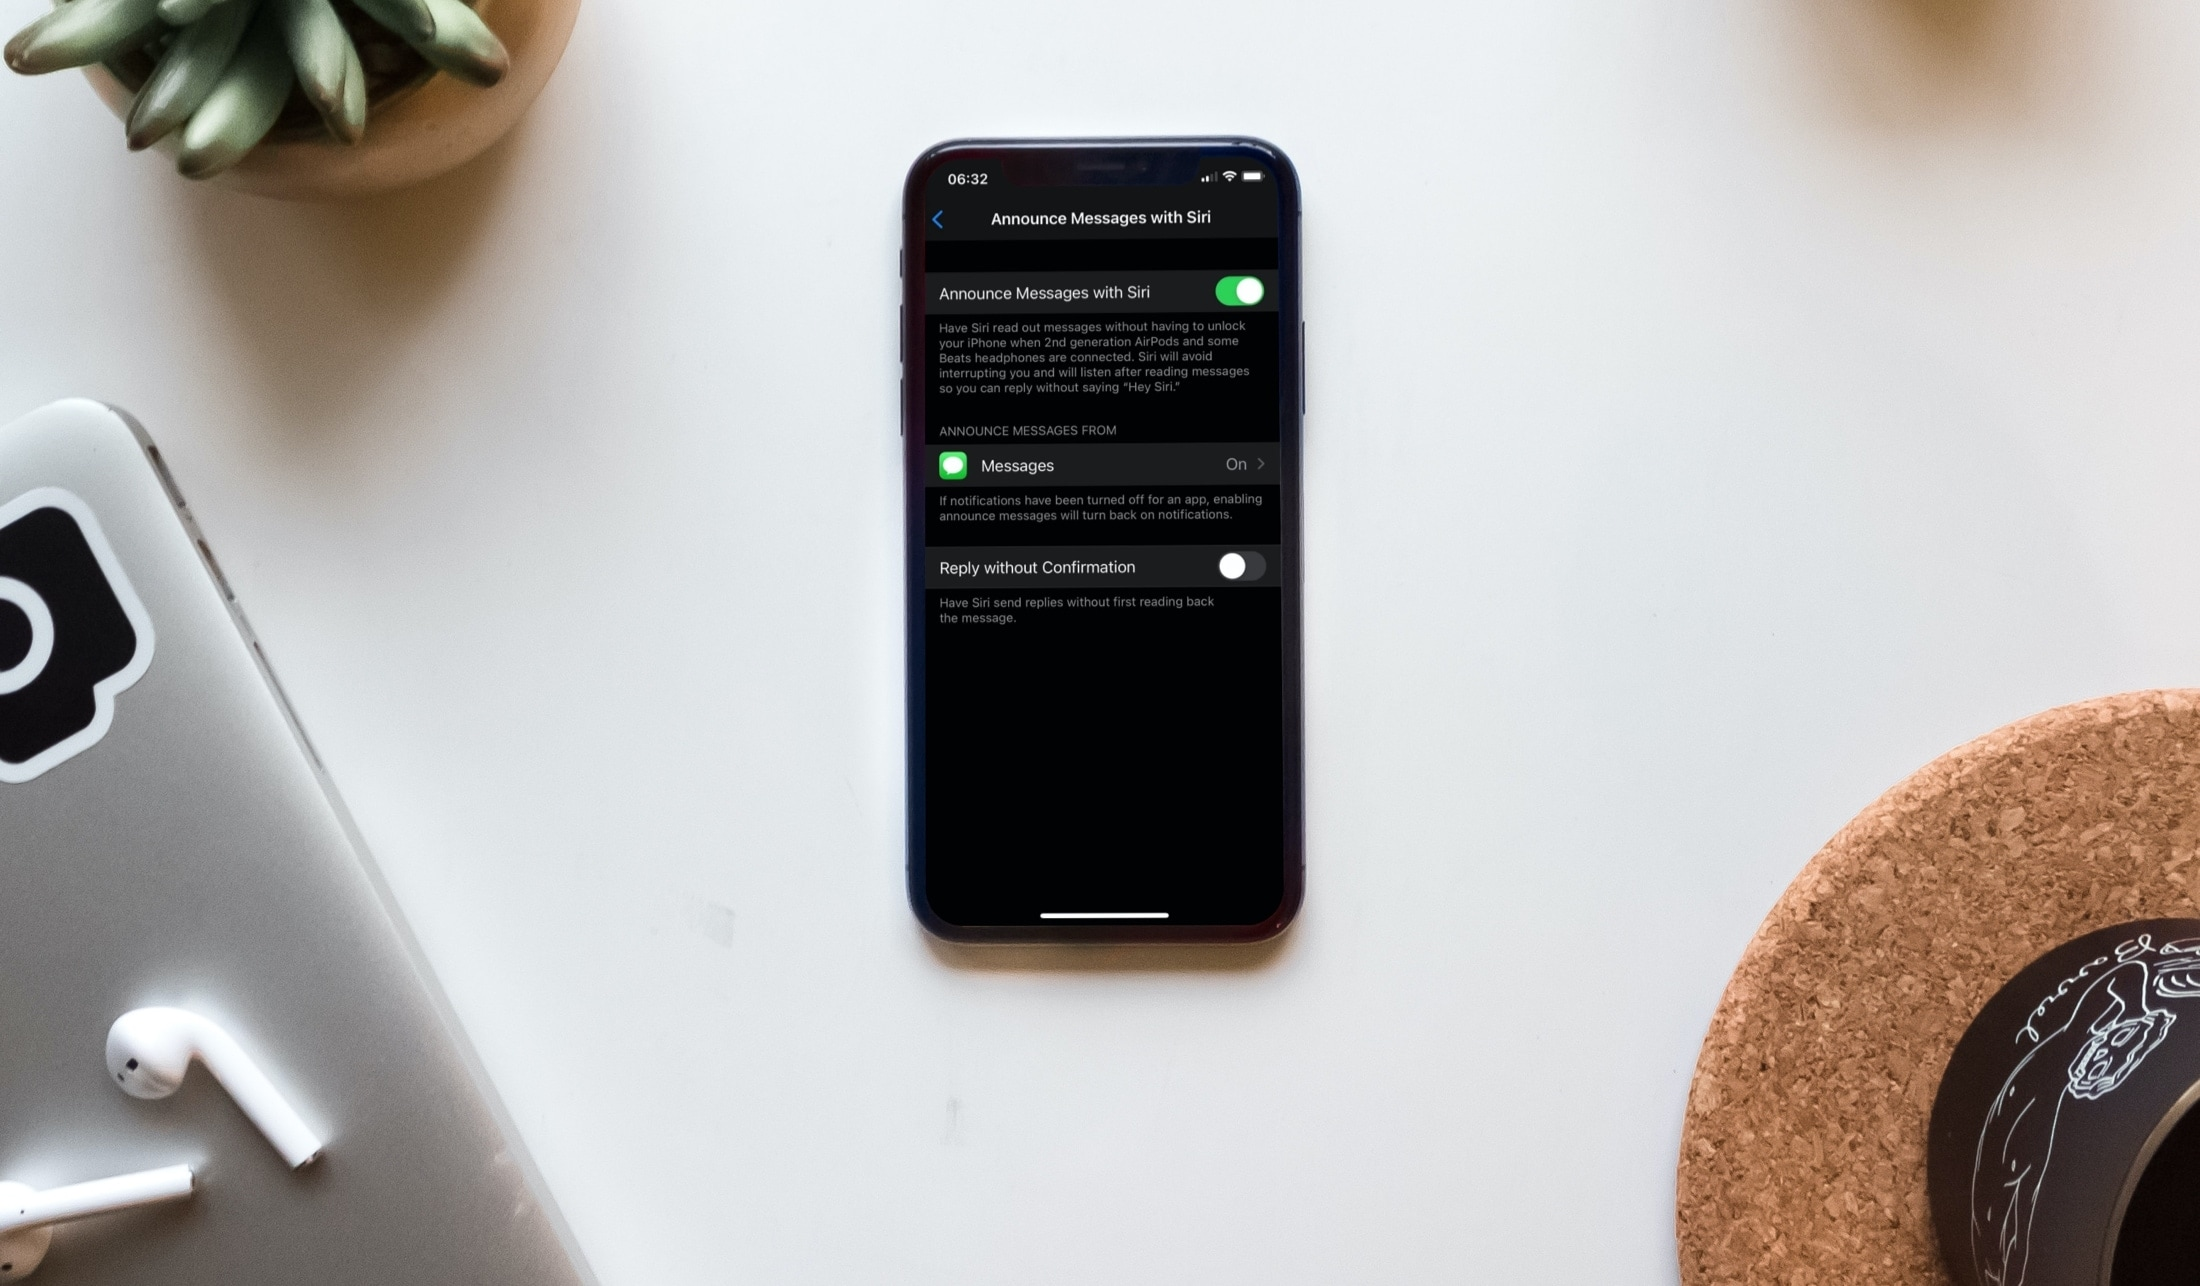 Notifications Announce Messages with Siri Enabled on iPhone